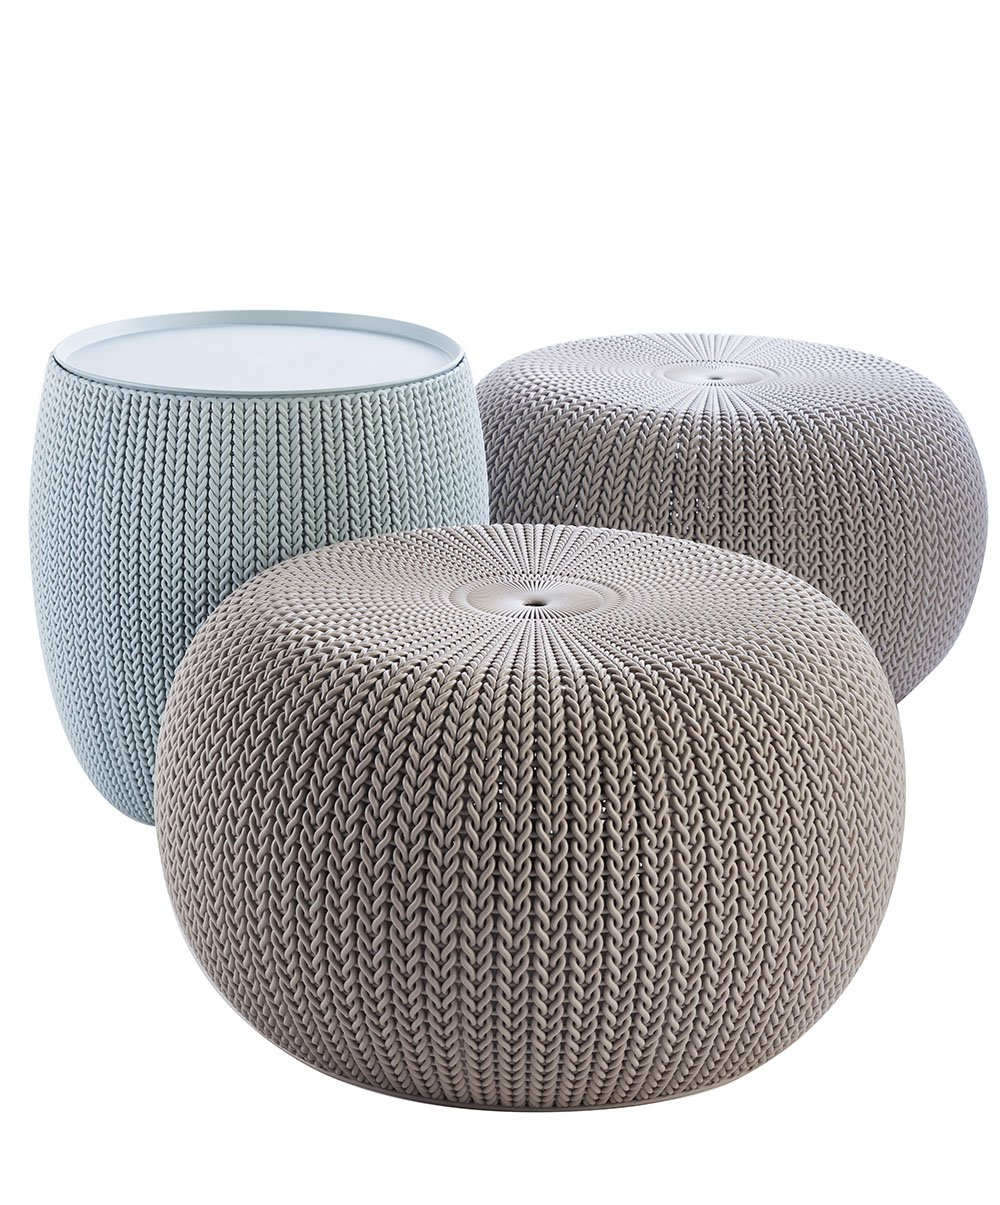 Keter 228474 Urban Knit Pouf Set, Misty Blue/Taupe by Keter